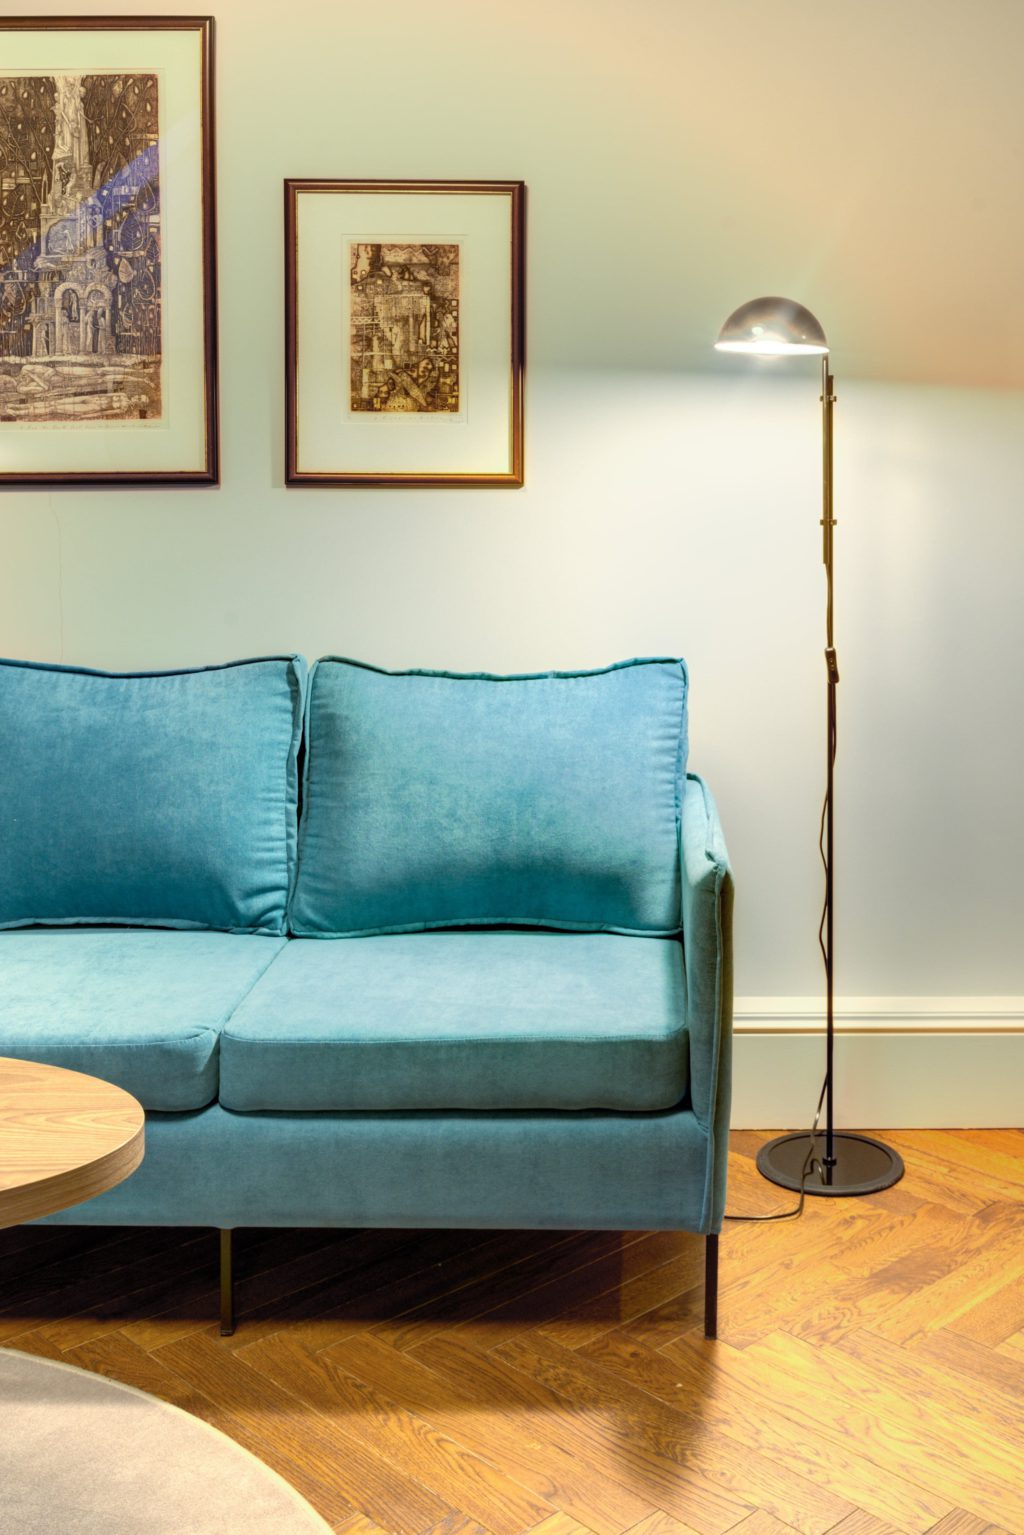 Hotel Vilnia - Blue Upholstered Couch